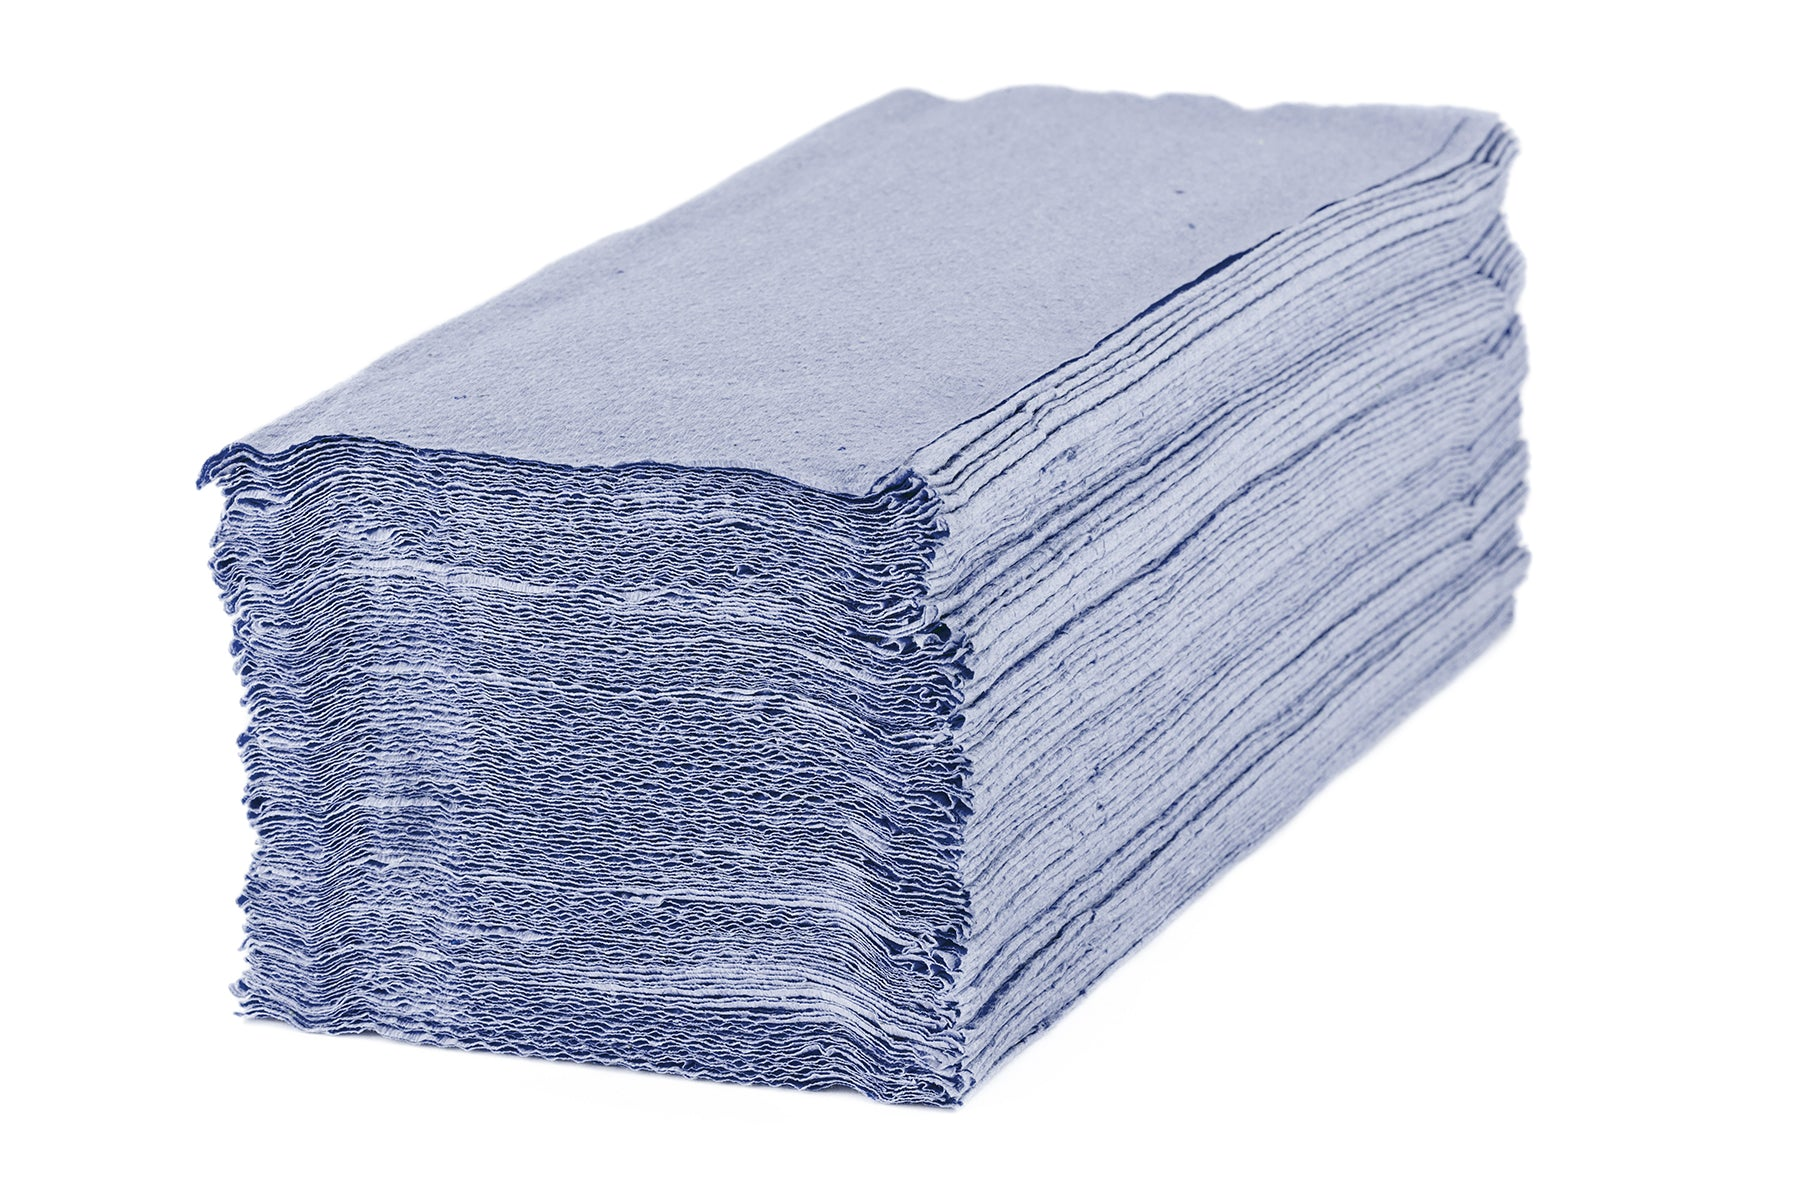 C-Fold Hand Towels - 6 packs